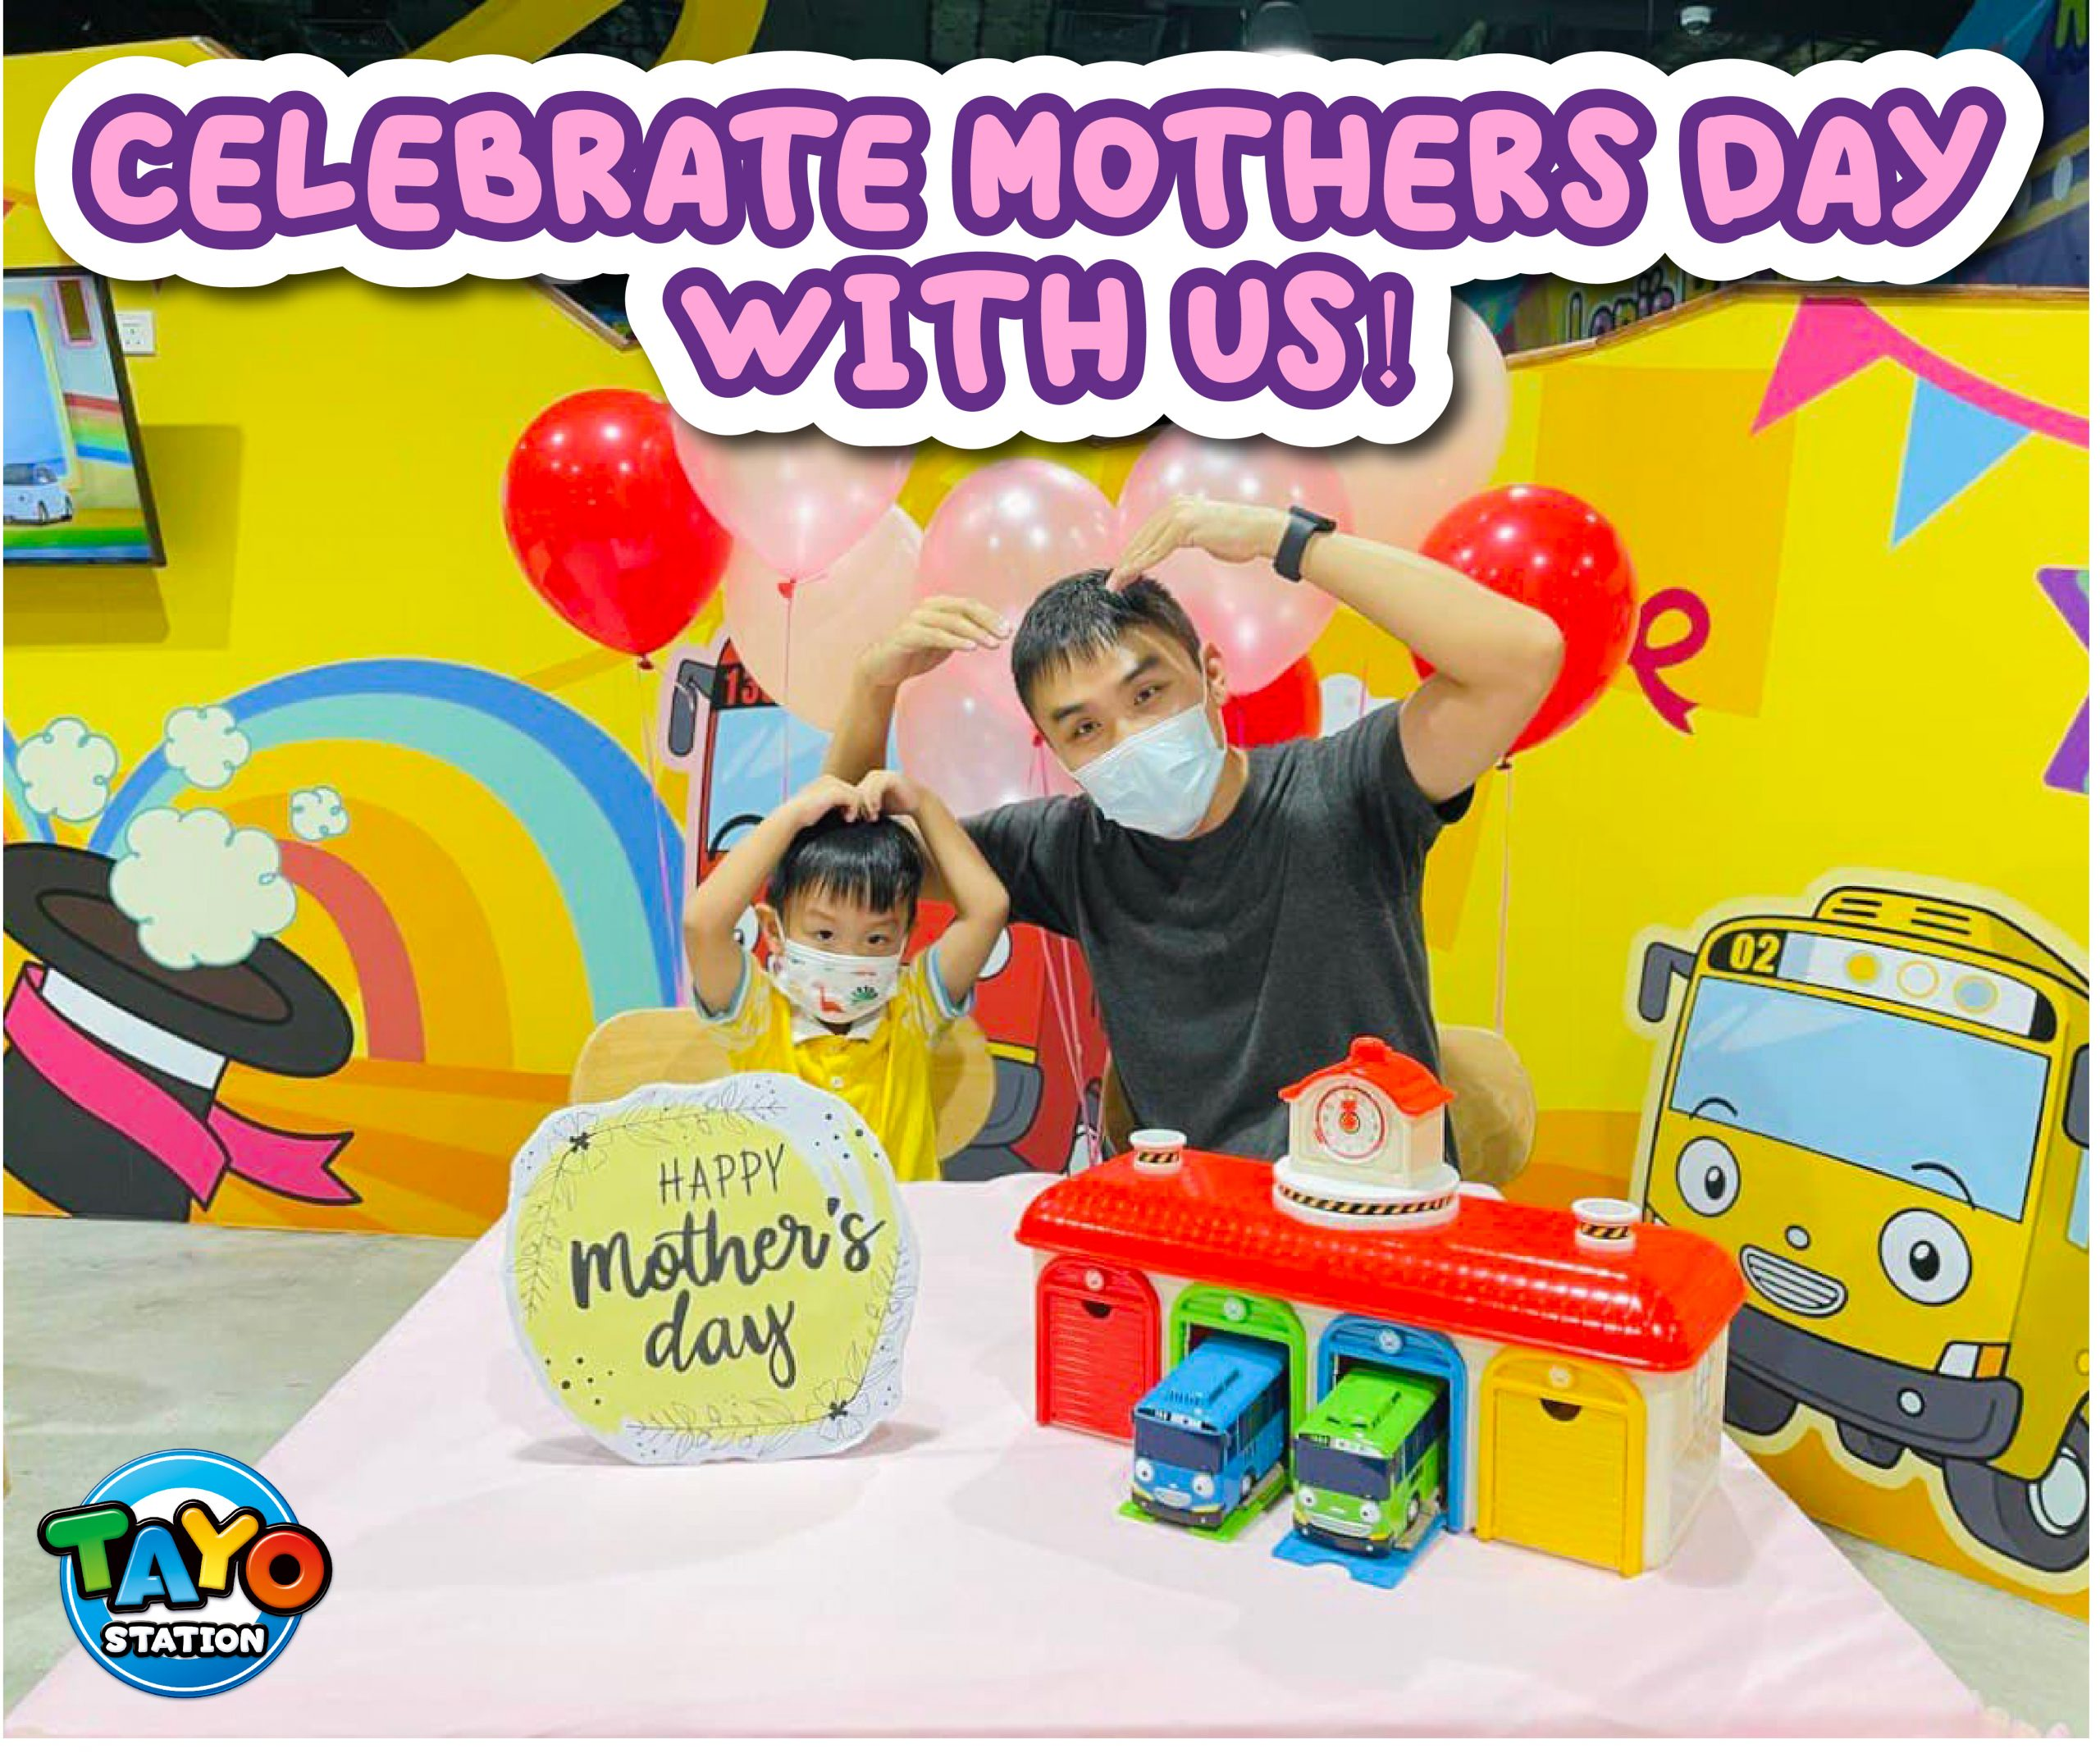 LDO Tayo Mothers Day 300x250  scaled